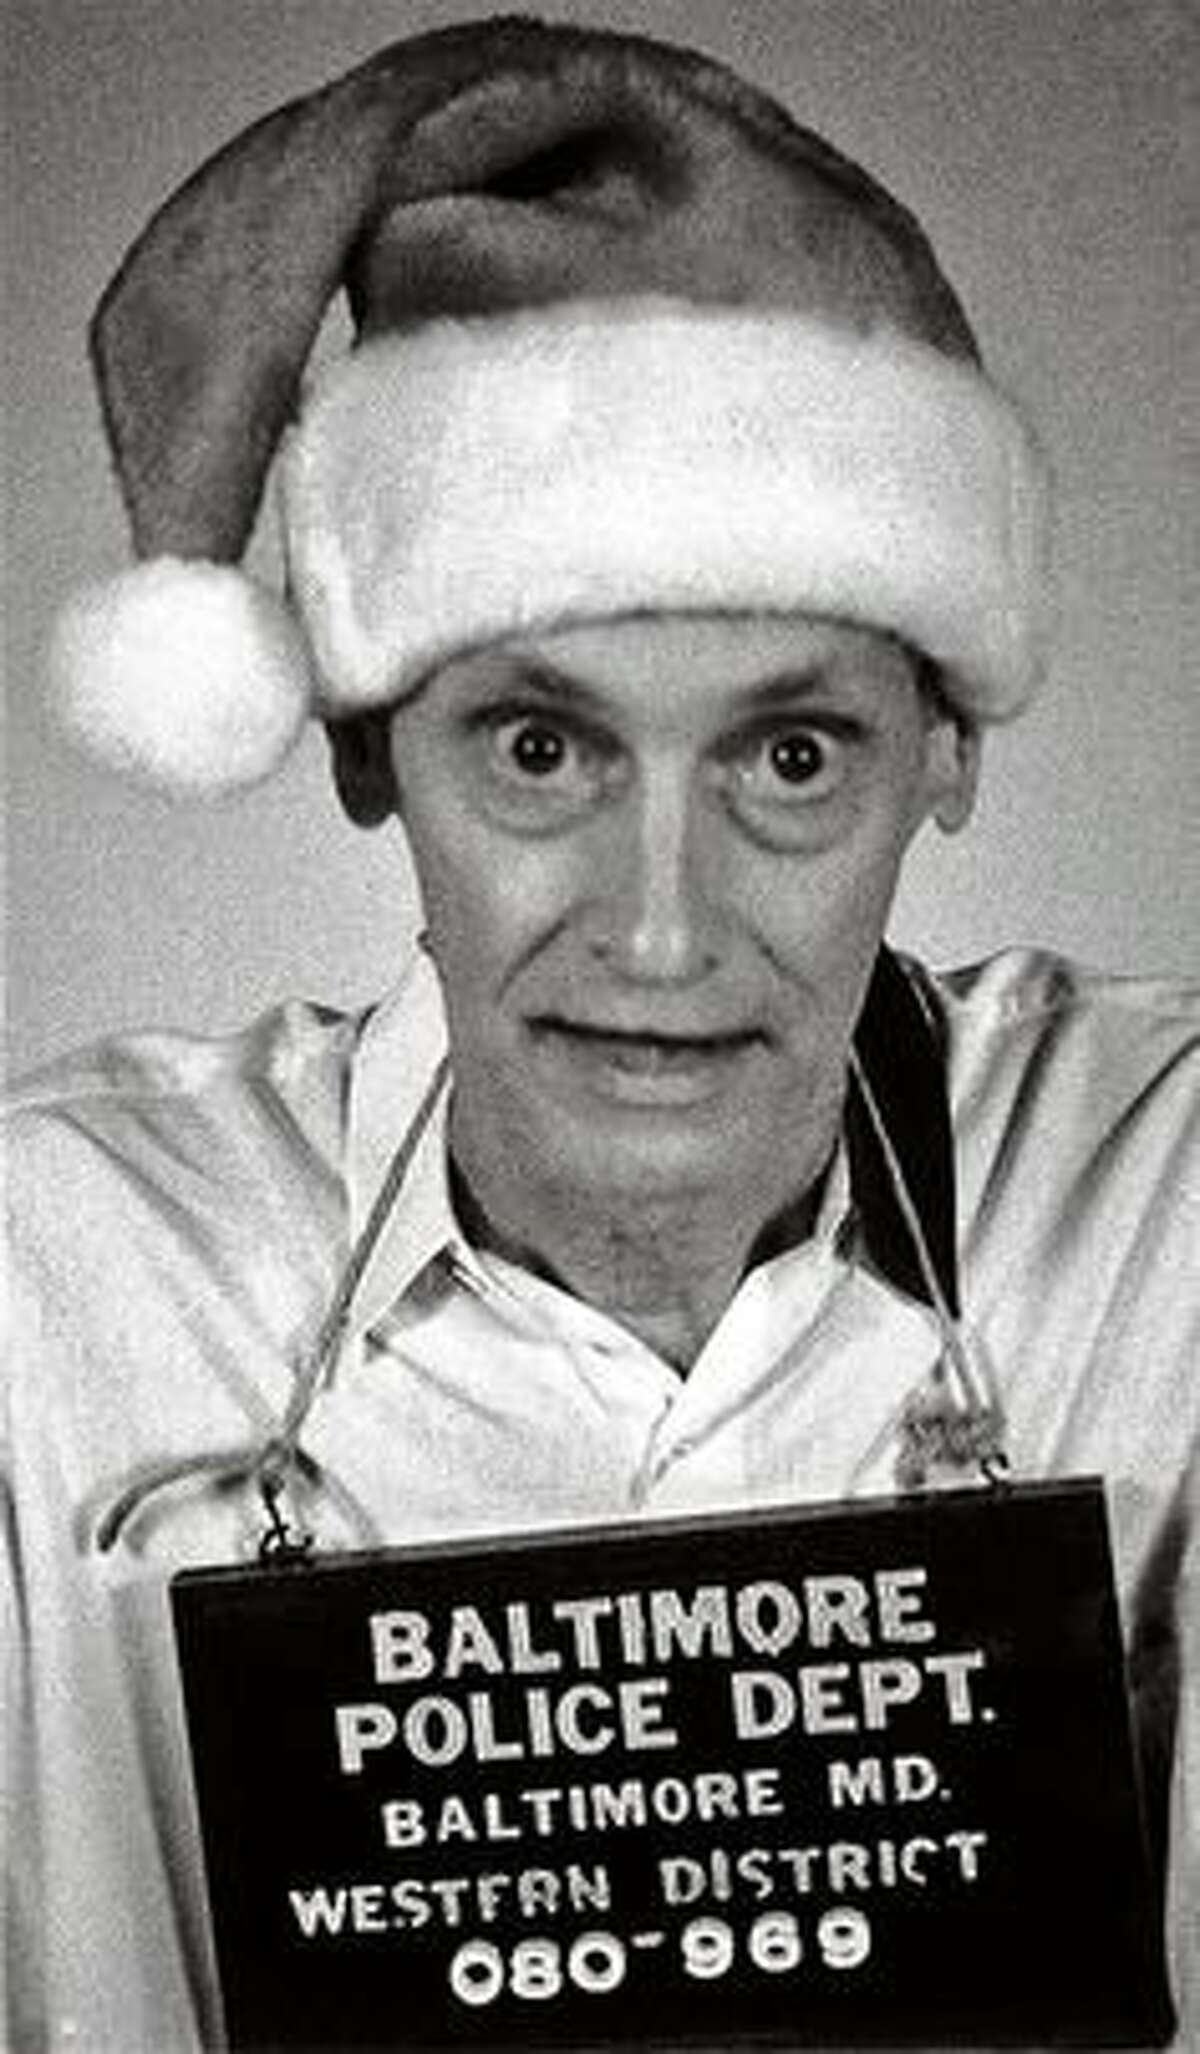 A fake mugshot by the Baltimore Police John Waters used one year as the image for his Christmas card.